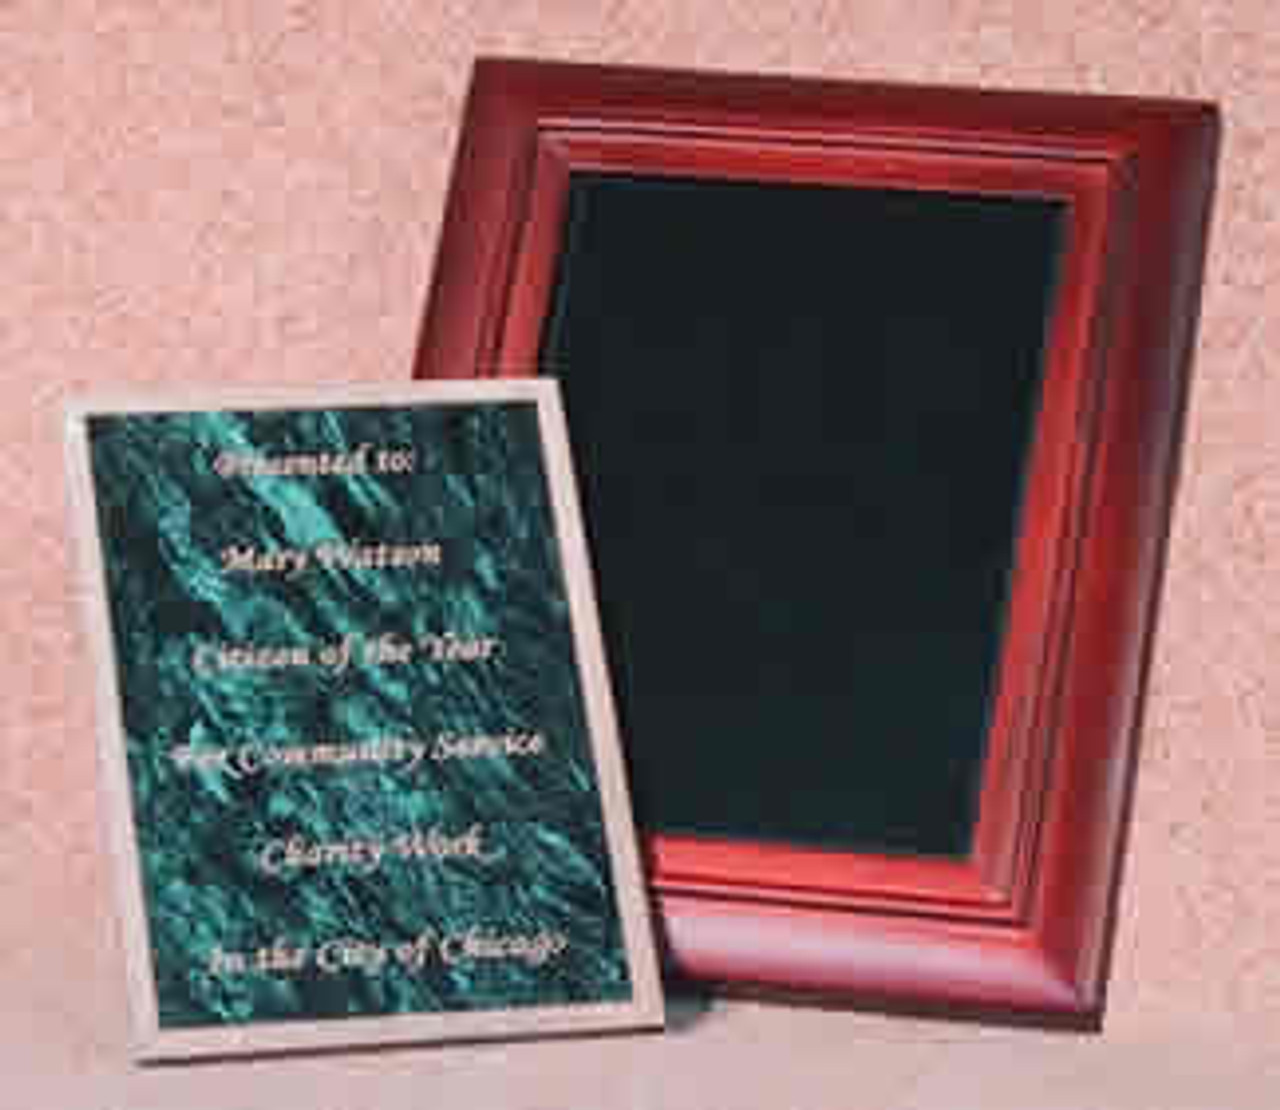 "PM-68ABM, Overall Size, 9"" x 11"", Recessed Size, 6"" x 8"" x 5/16"", w/Absolute Black Marble Plaque"